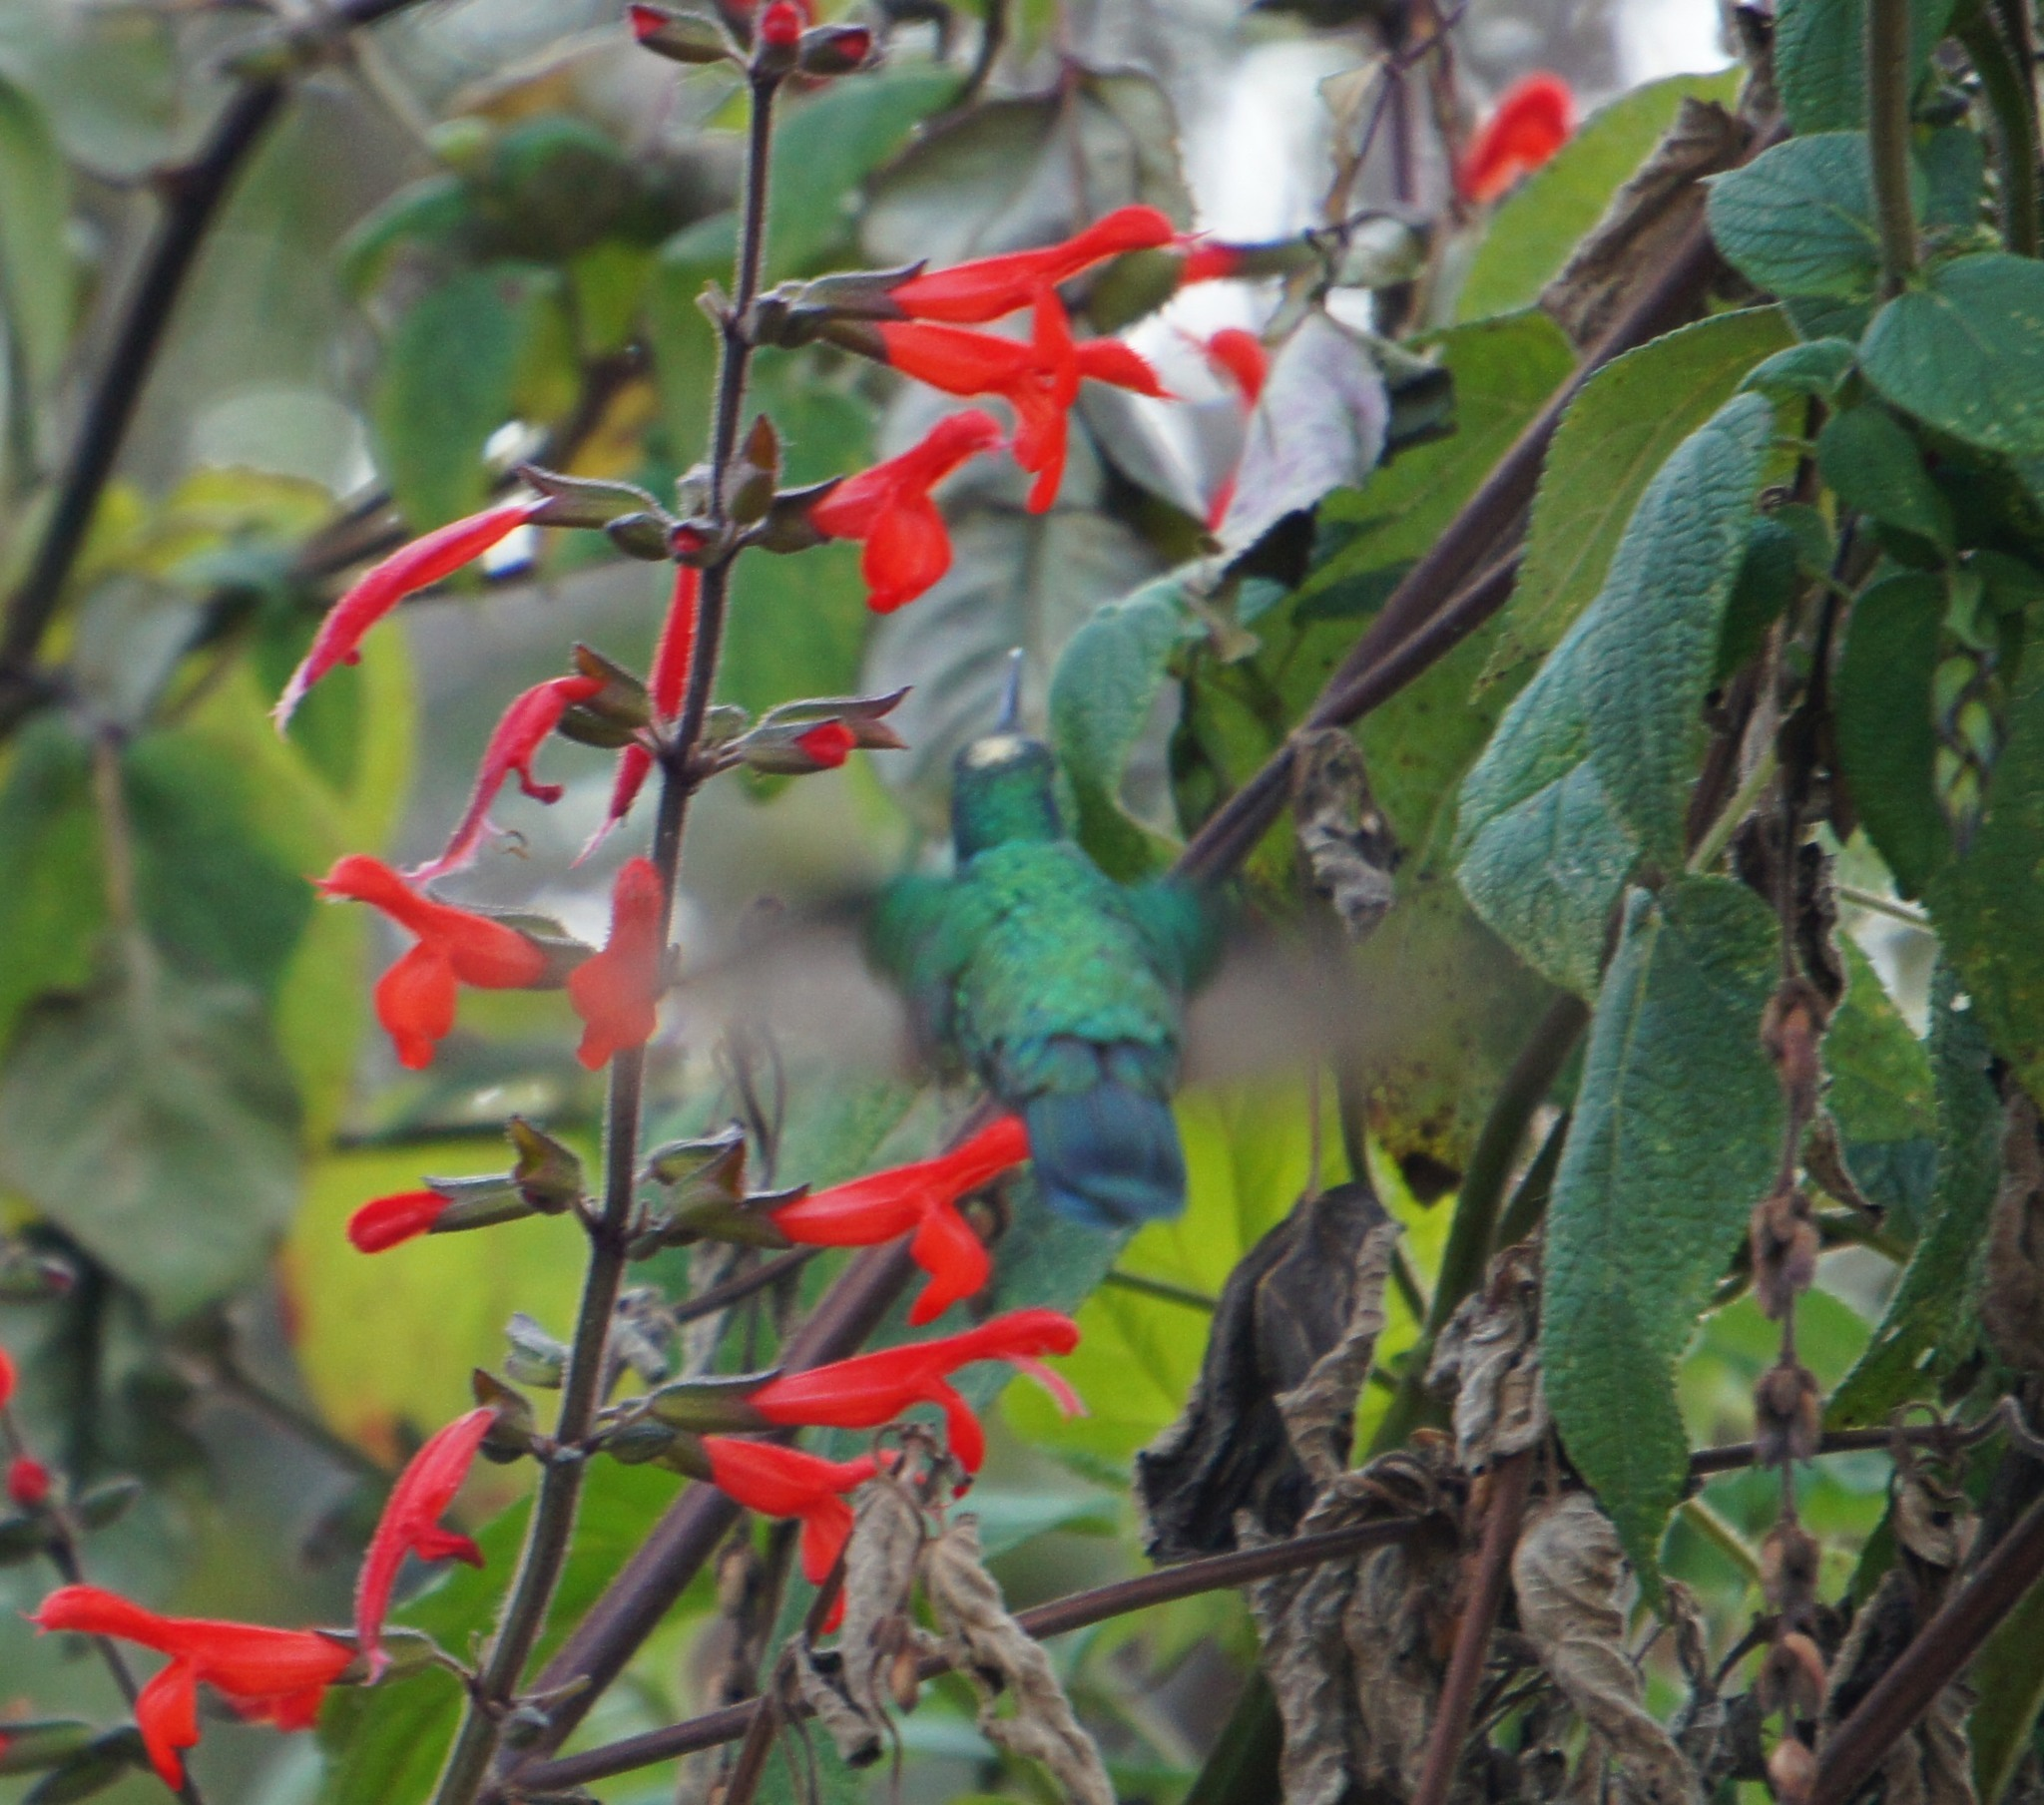 Image of Mexican Violetear